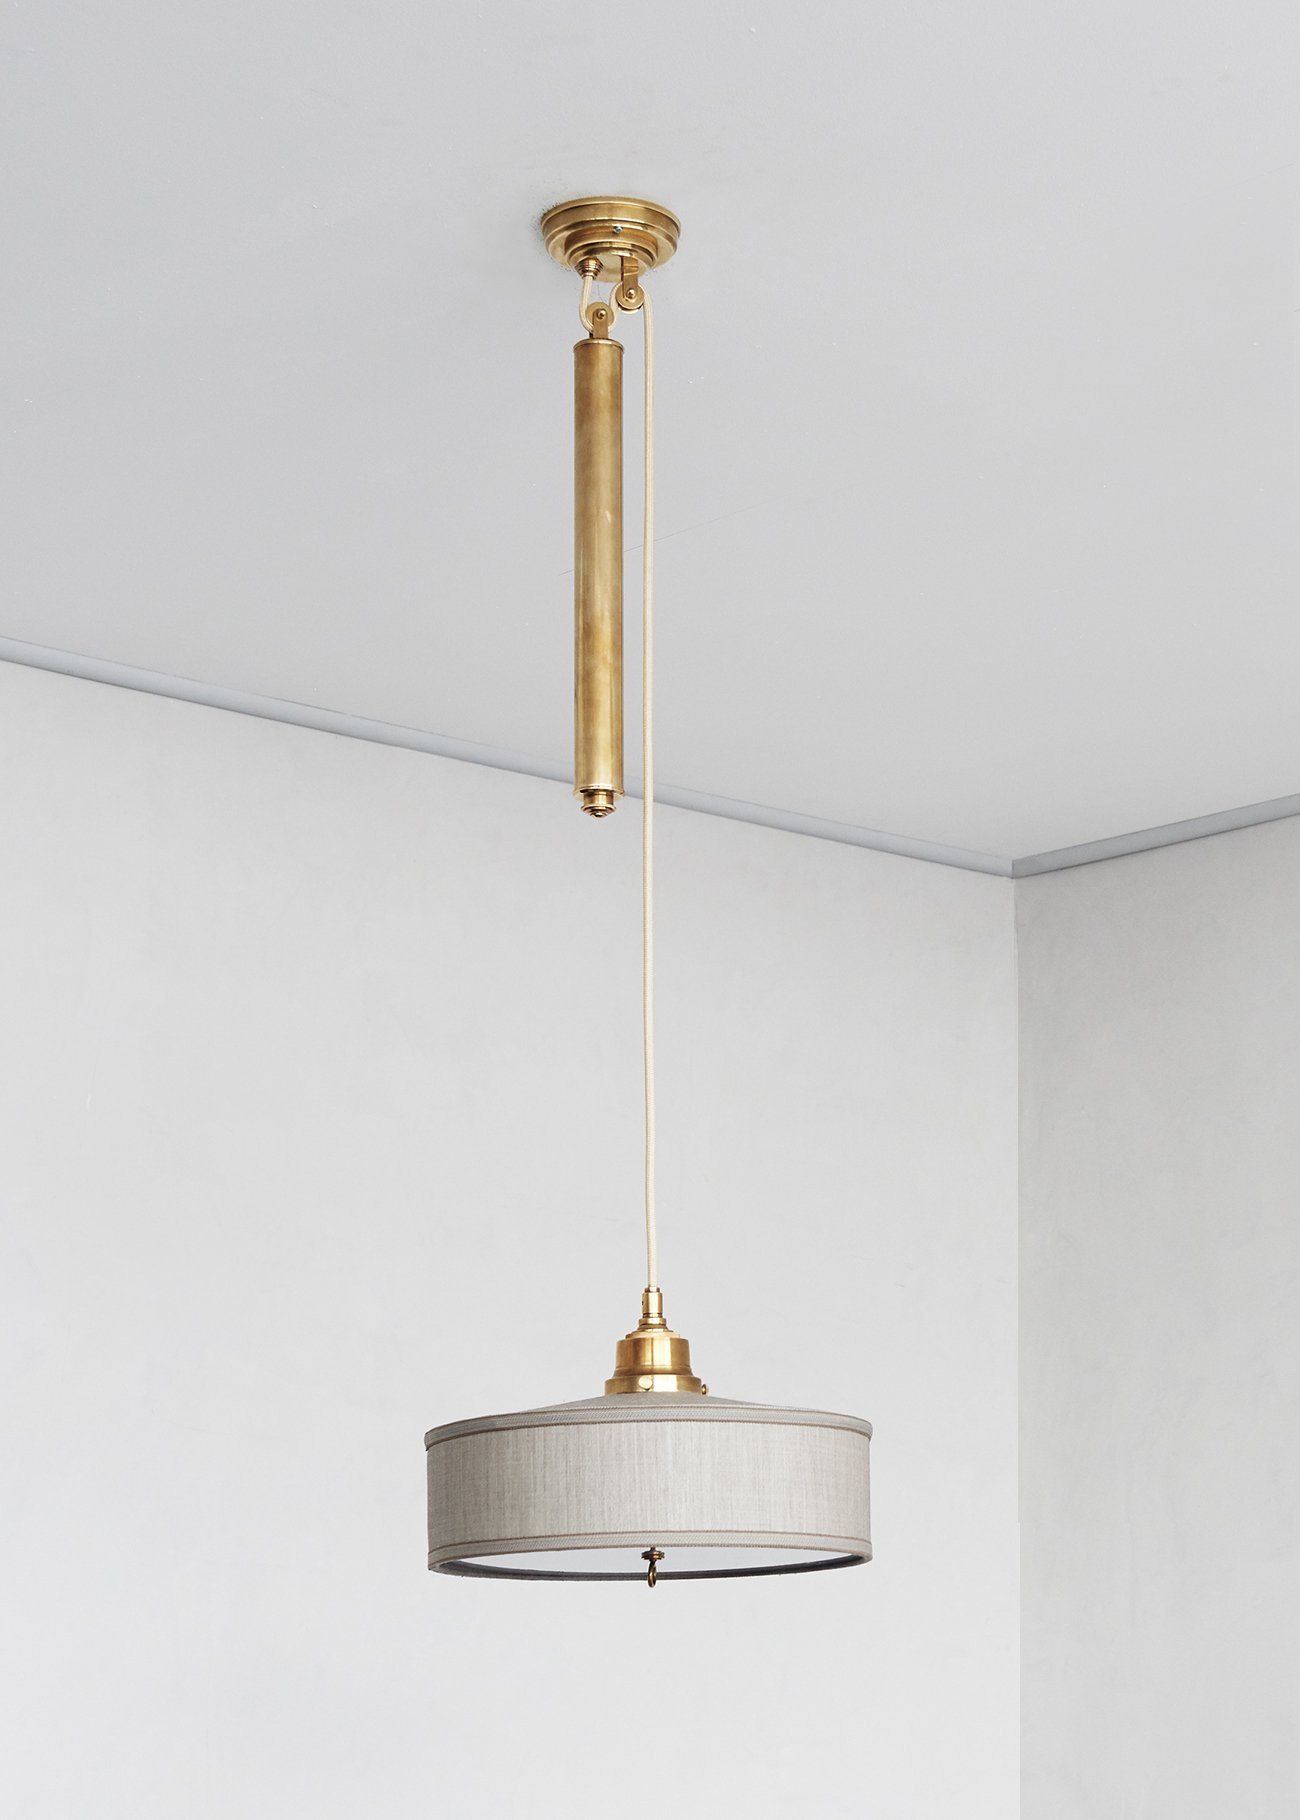 7 past trends - A shopping selection - rw guild lamp